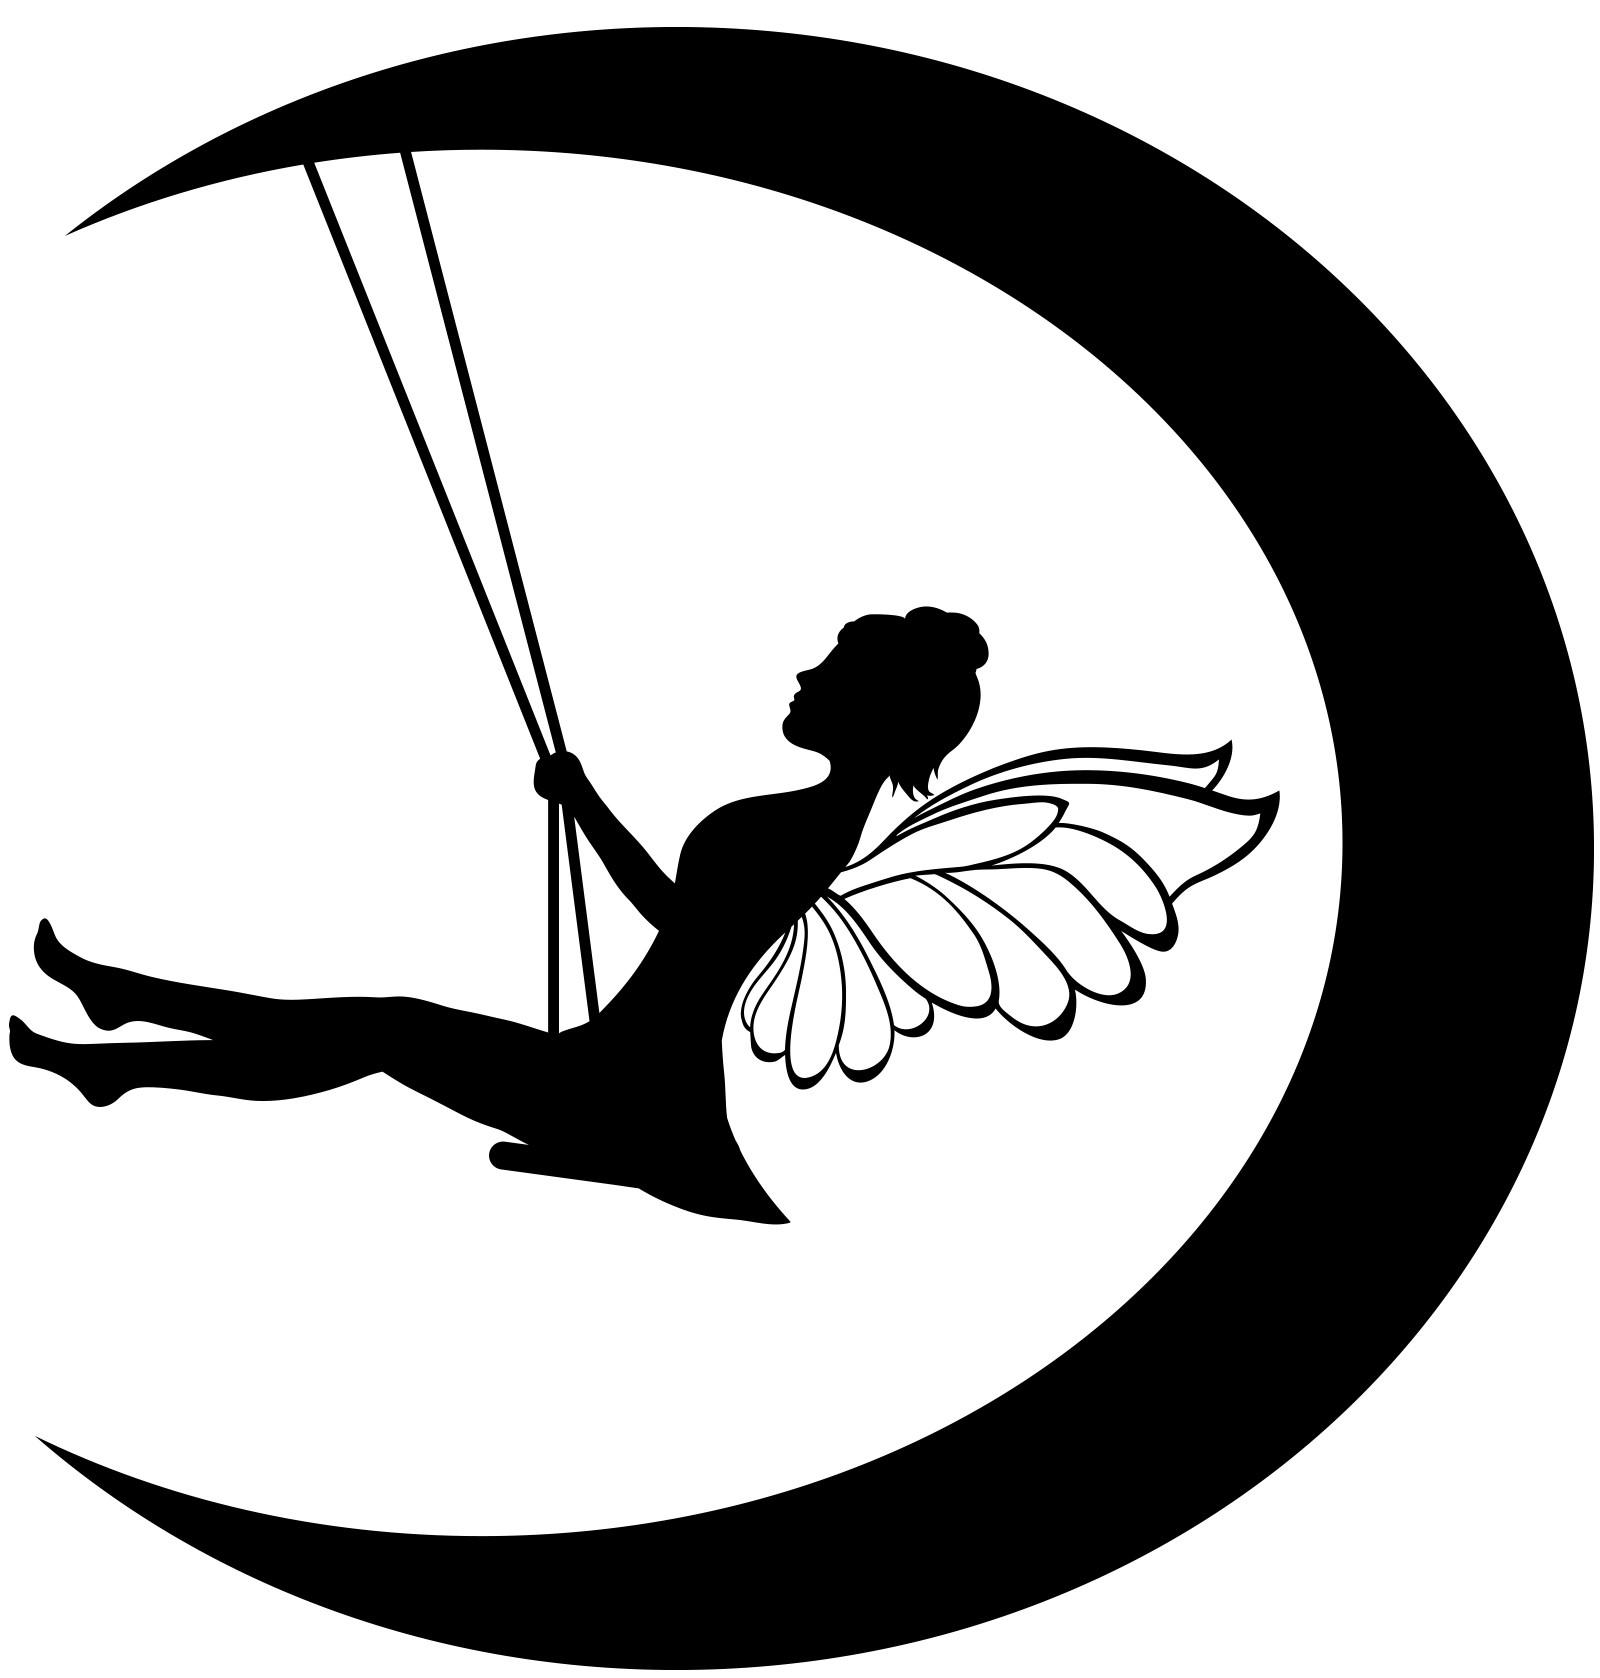 Fairy clipart moon. Top black image vector